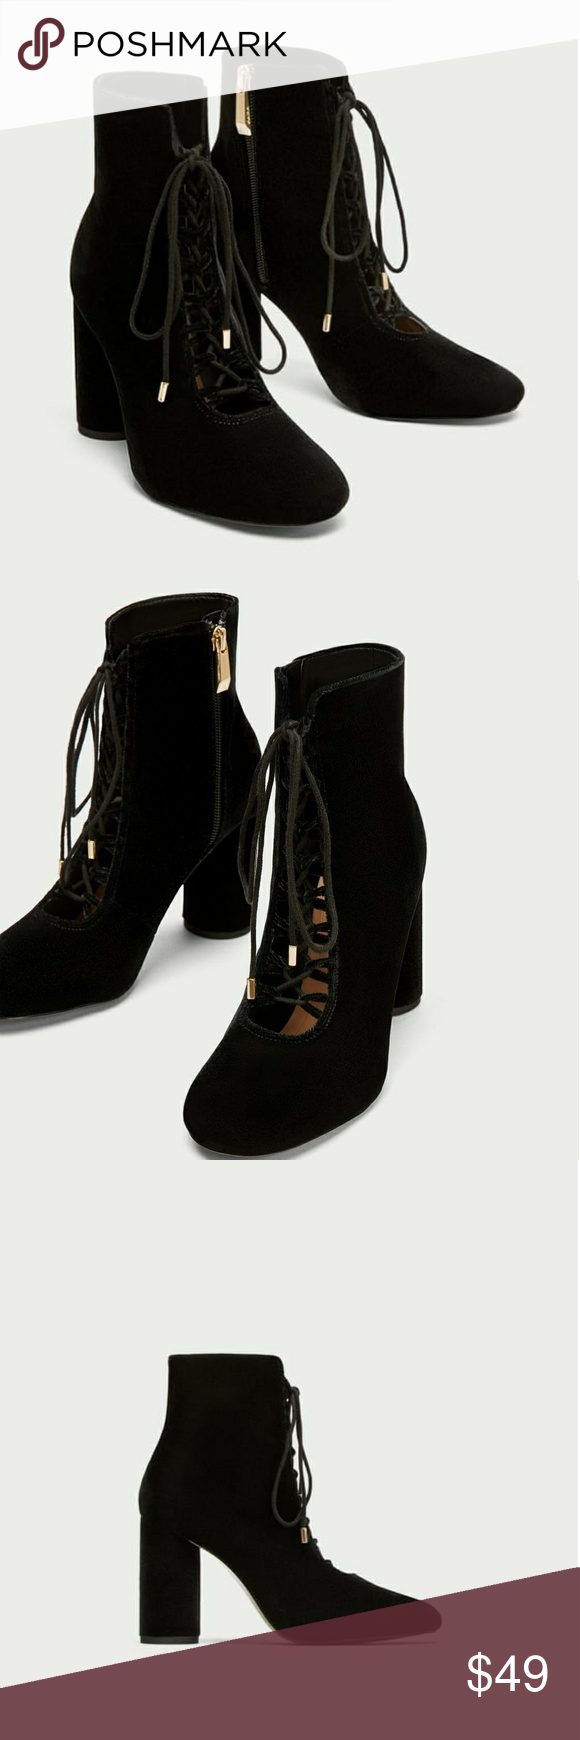 11cf44bee0bc Zara Lace-Up Black Velvet Ankle Boots Zara High heel ankle boots in black  velvet. Sz 6 (EU 36) Sz 7.5 (EU 38) Featuring lace-up detail on the instep